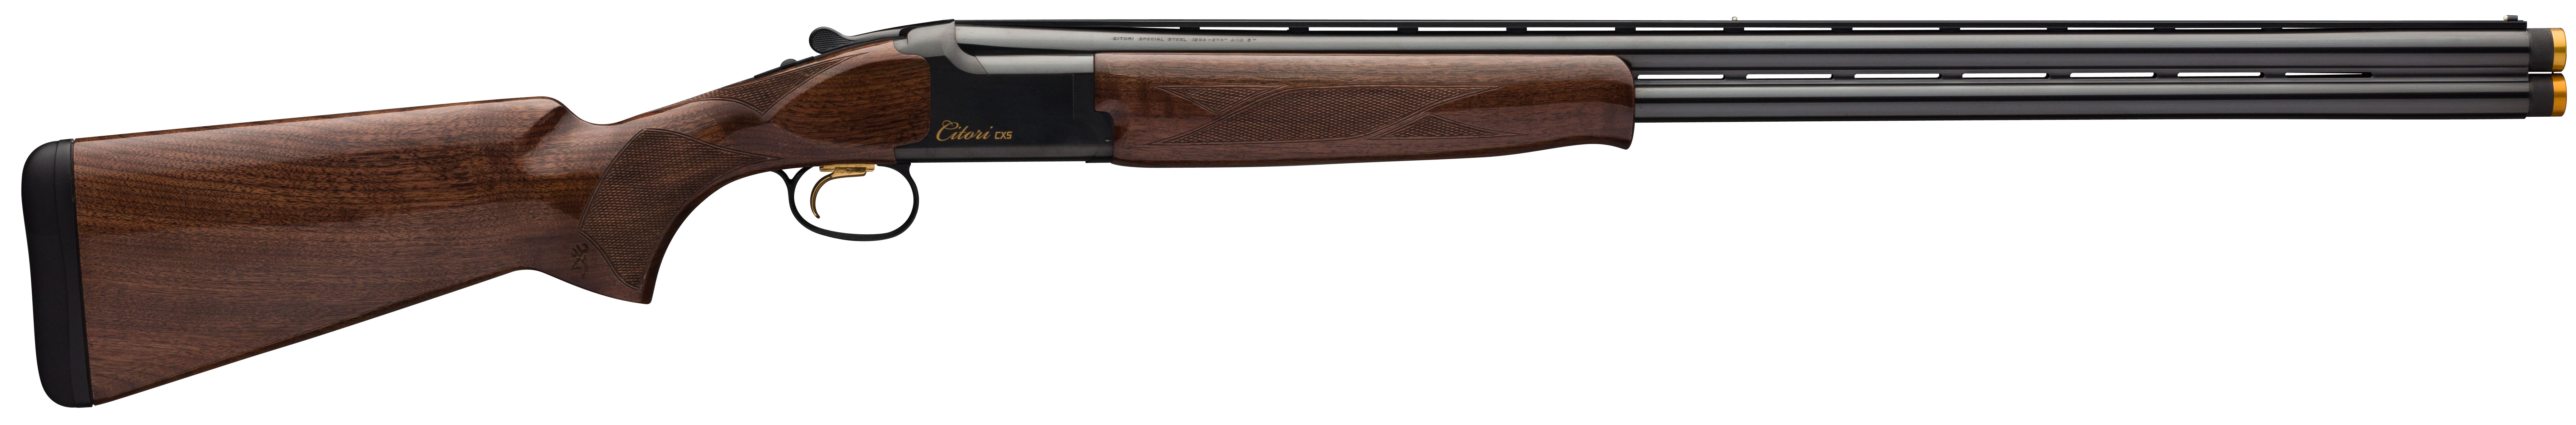 Browning Citori CXS Over/Under Shotgun 3'' 12 Gauge 30'' Blued Steel - Black Walnut